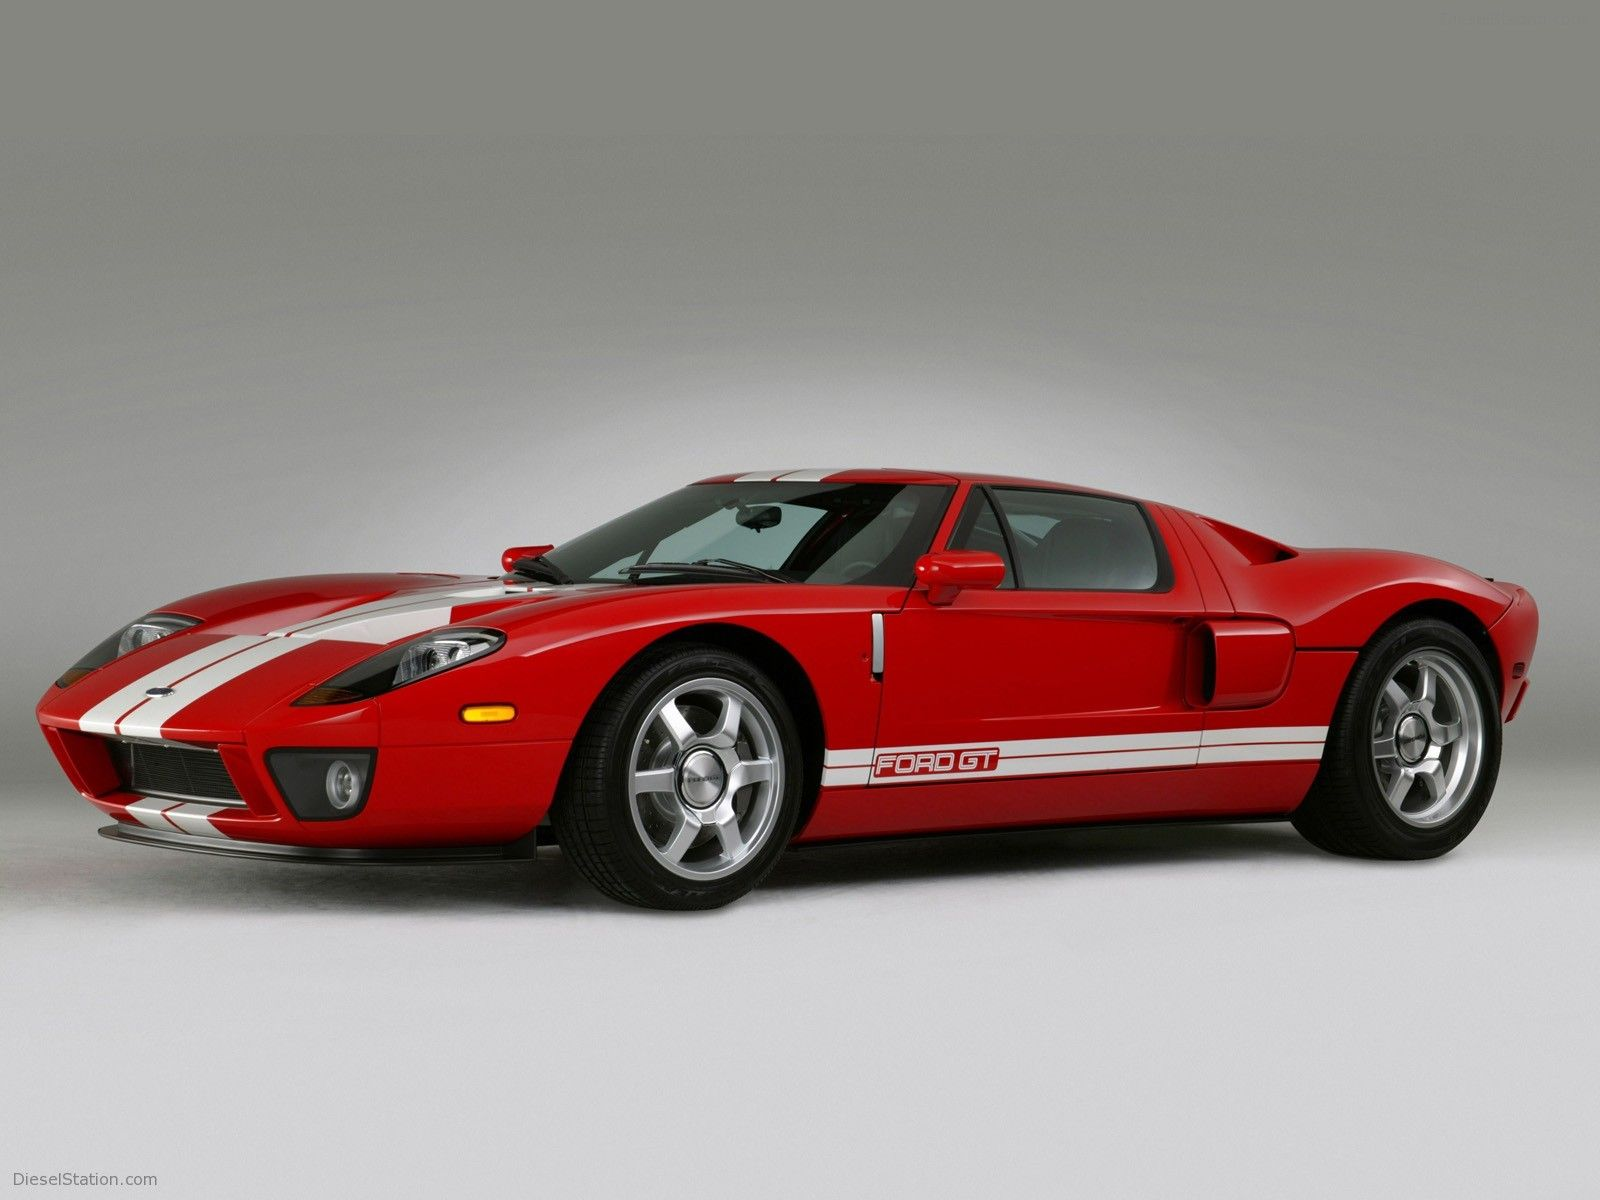 Ford Gt Ford Gt Concept Cars Classic Cars